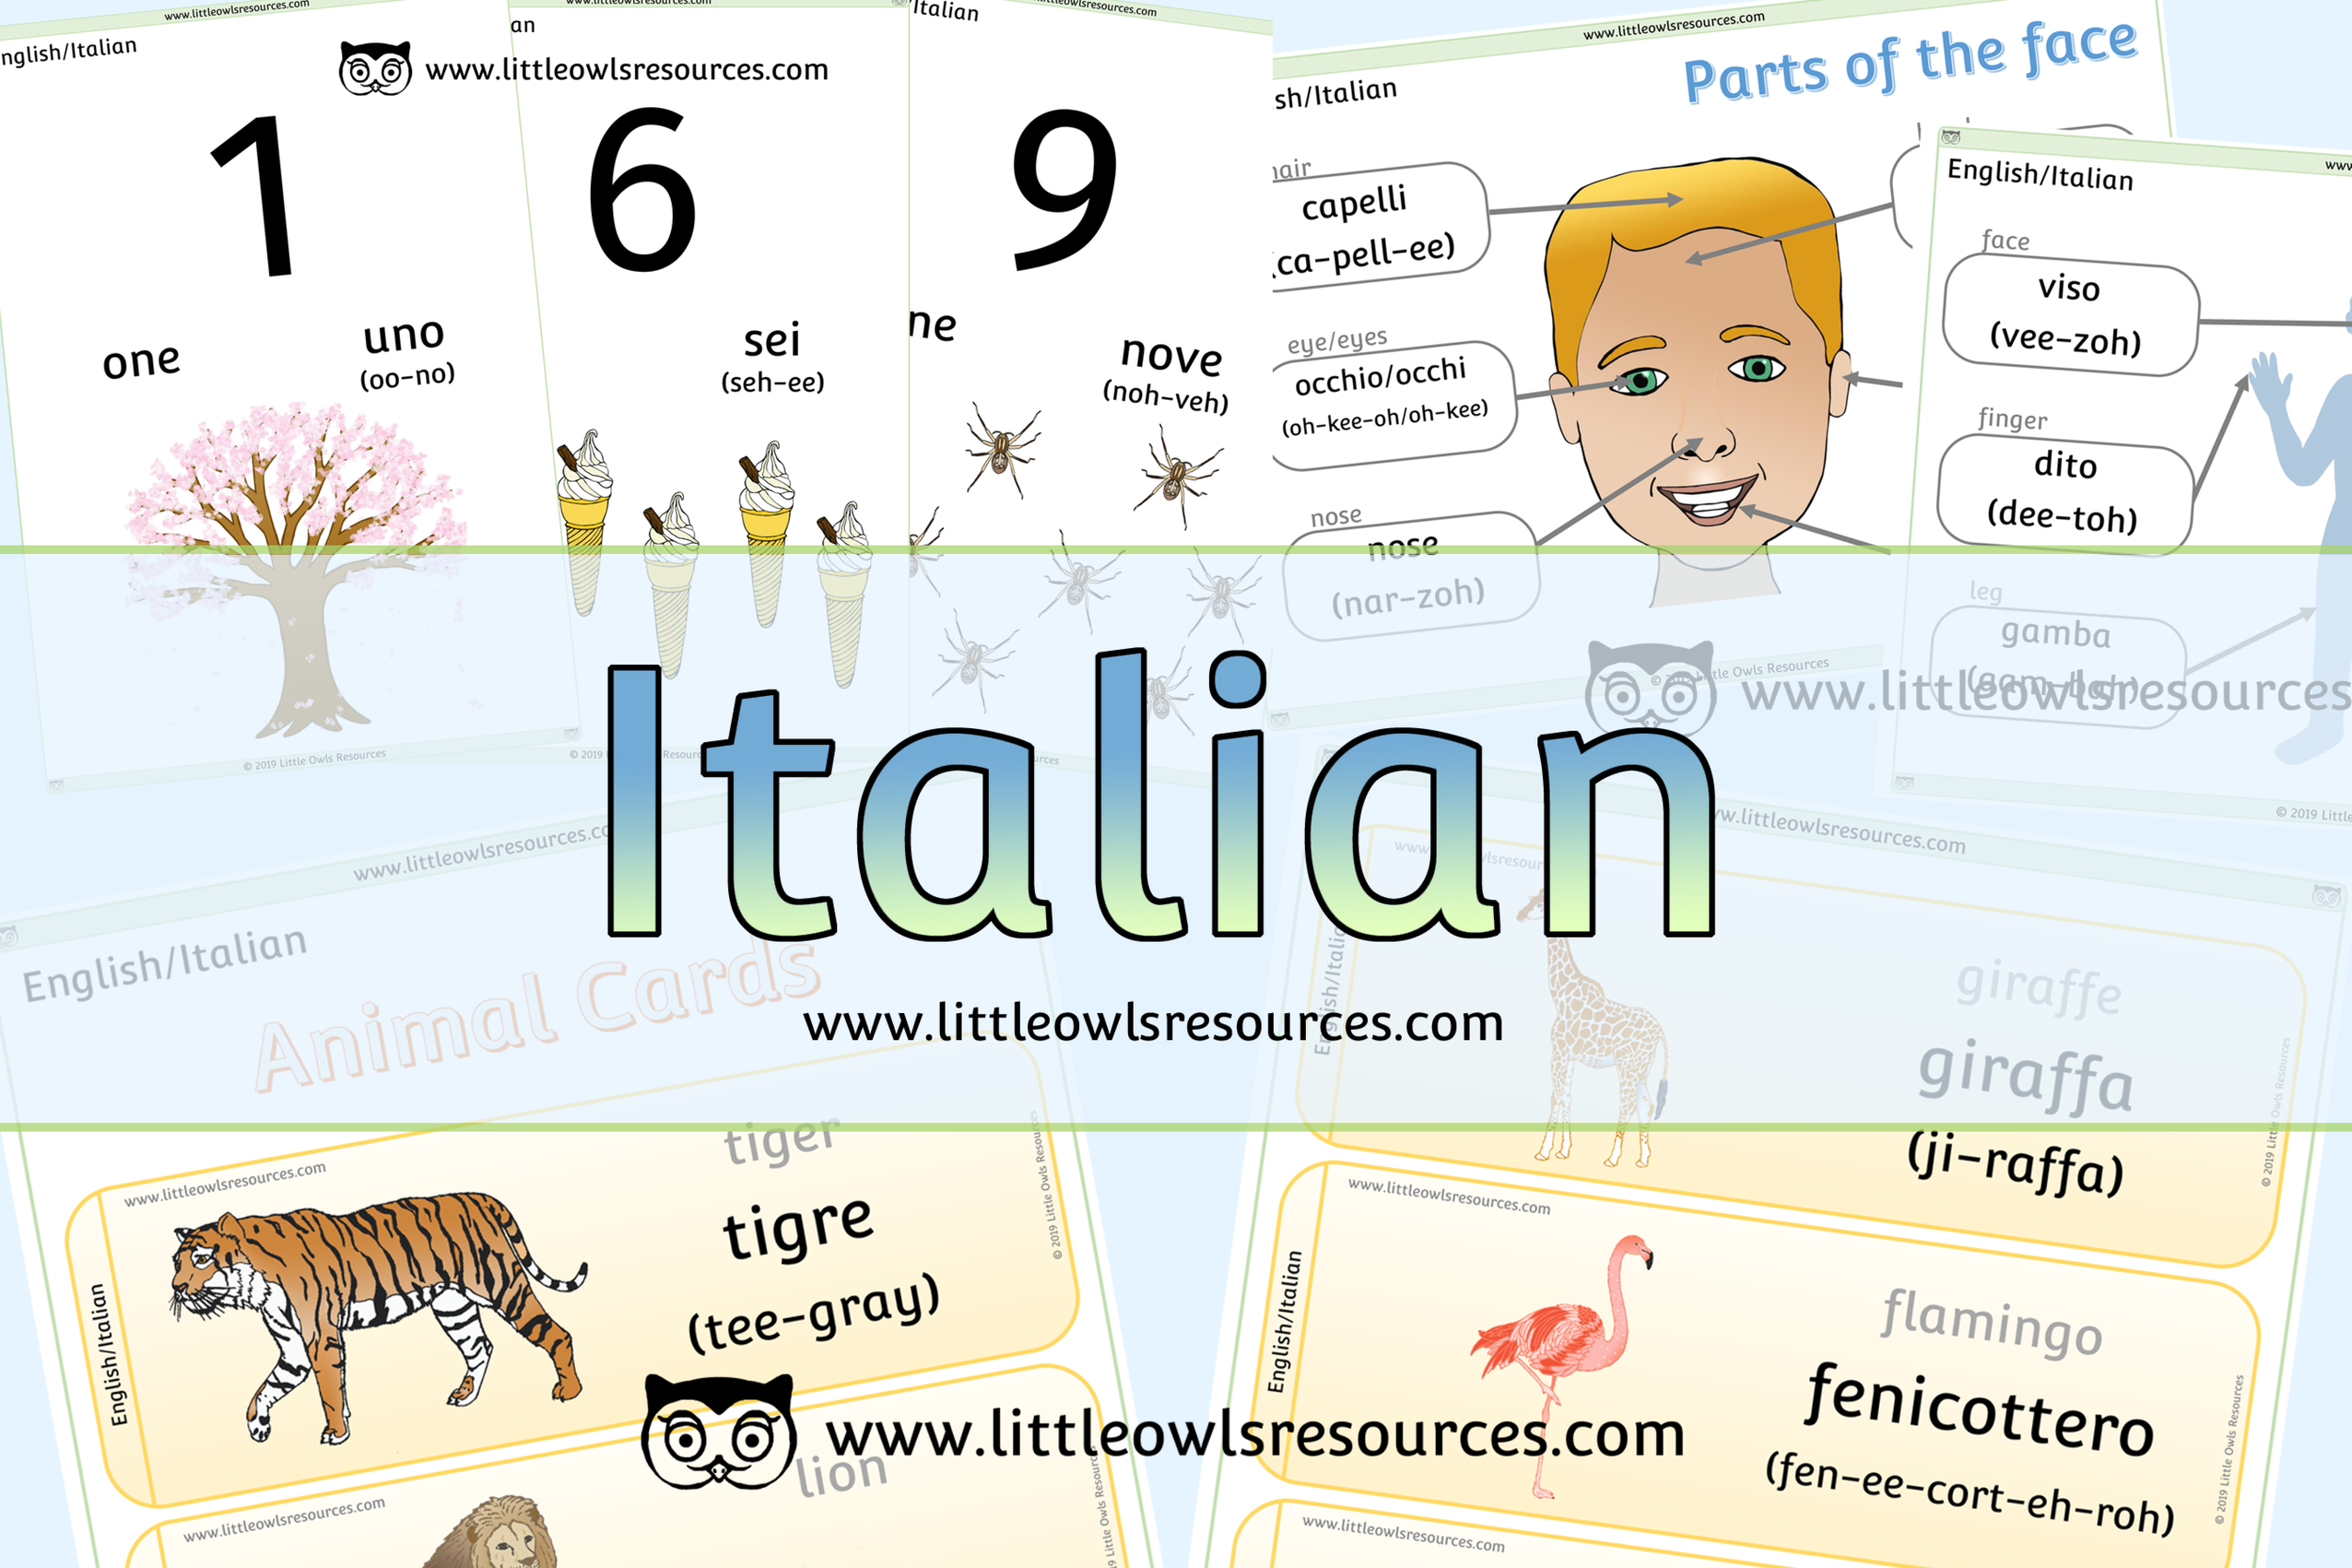 Italian/English Dual Language Resources